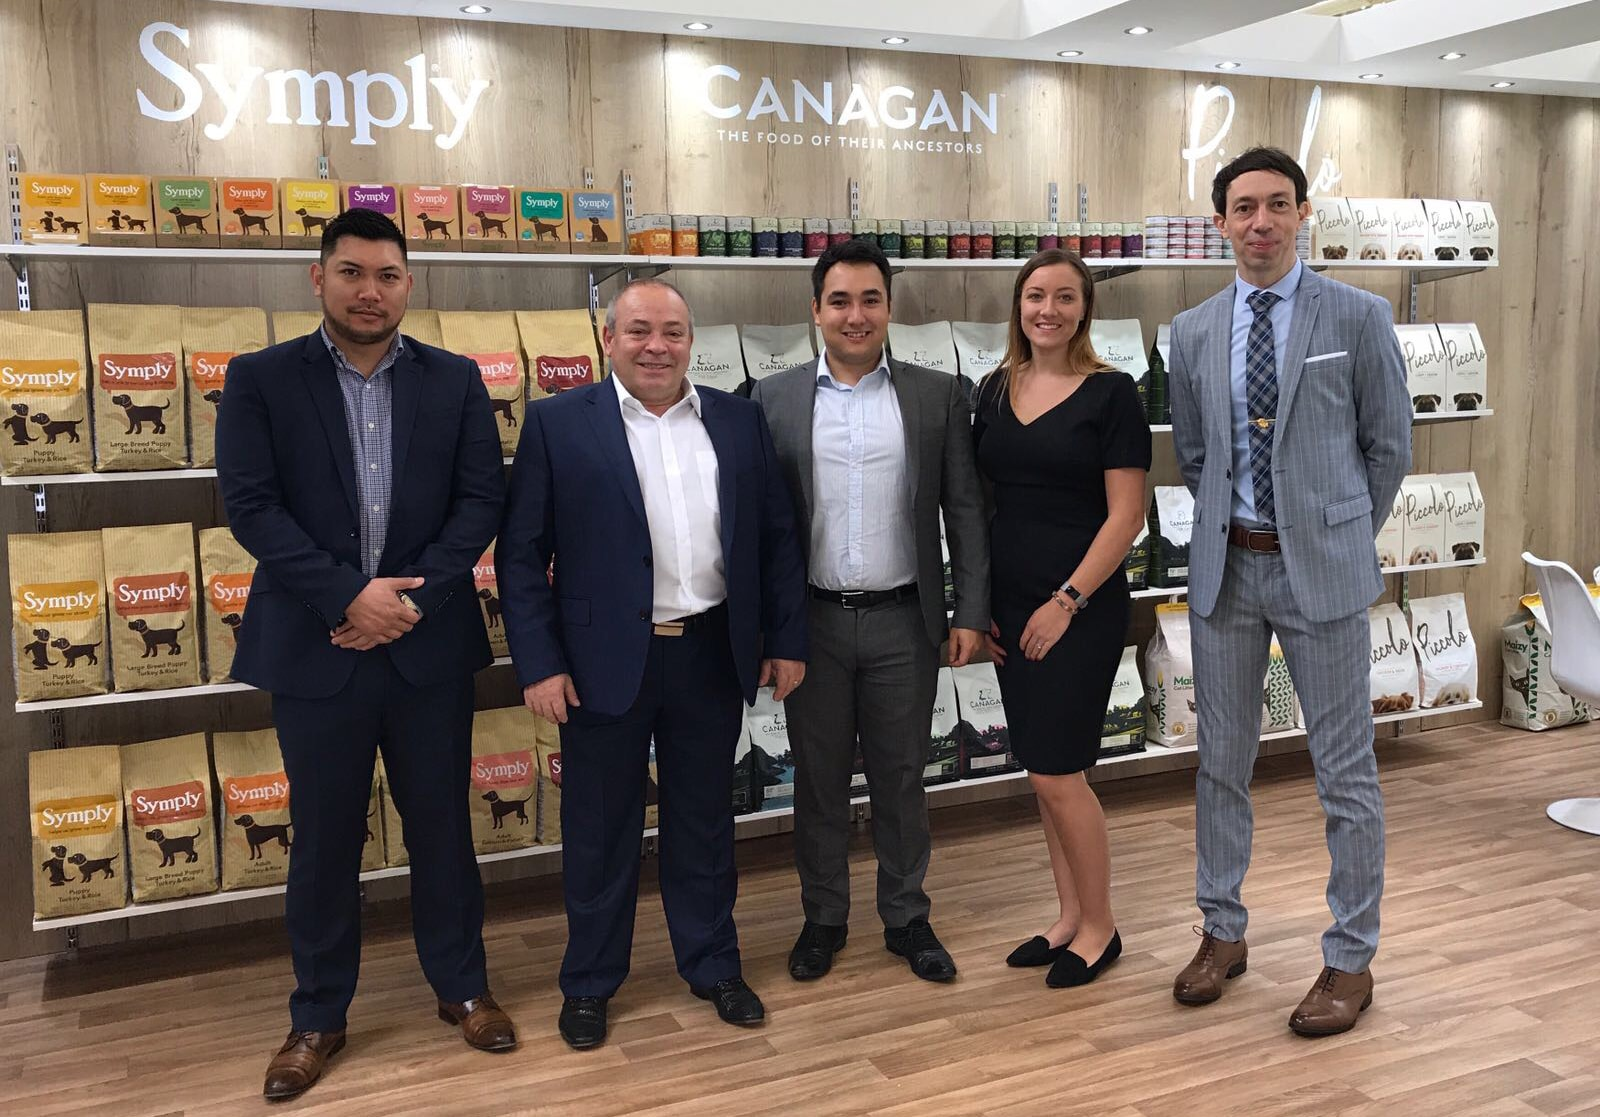 Canagan team and retailers